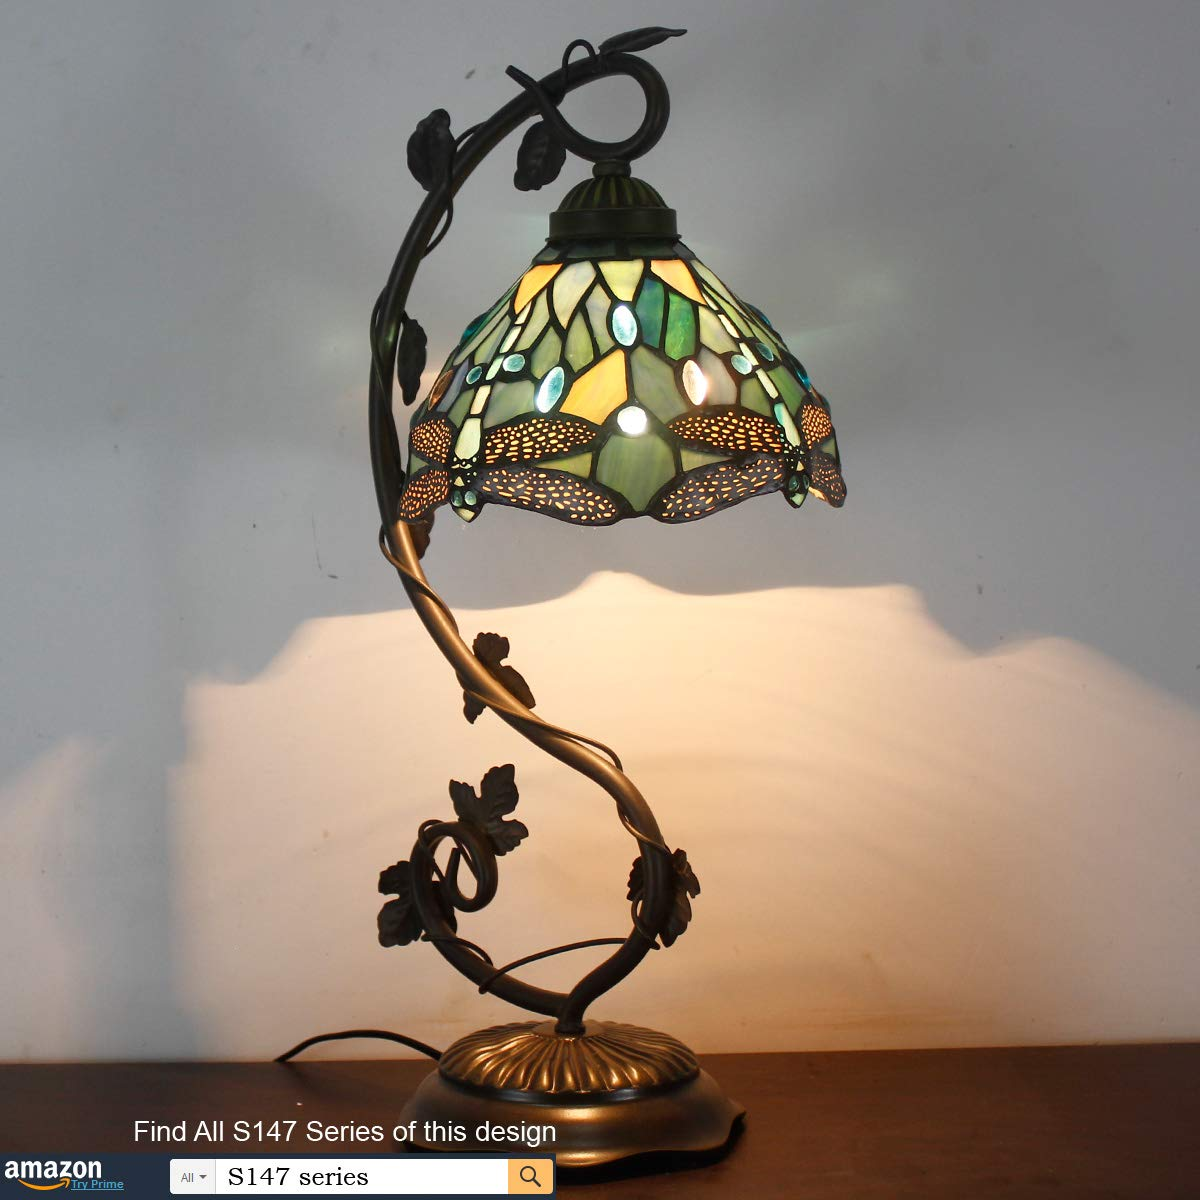 Tiffany Lamps Stained Glass Table Desk Reading Lamp Crystal Bead Sea Blue Dragonfly Style Shade W8H22 Inch for Living Room Bedroom Bookcase Dresser Coffee Table S147 WERFACTORY by WERFACTORY (Image #6)